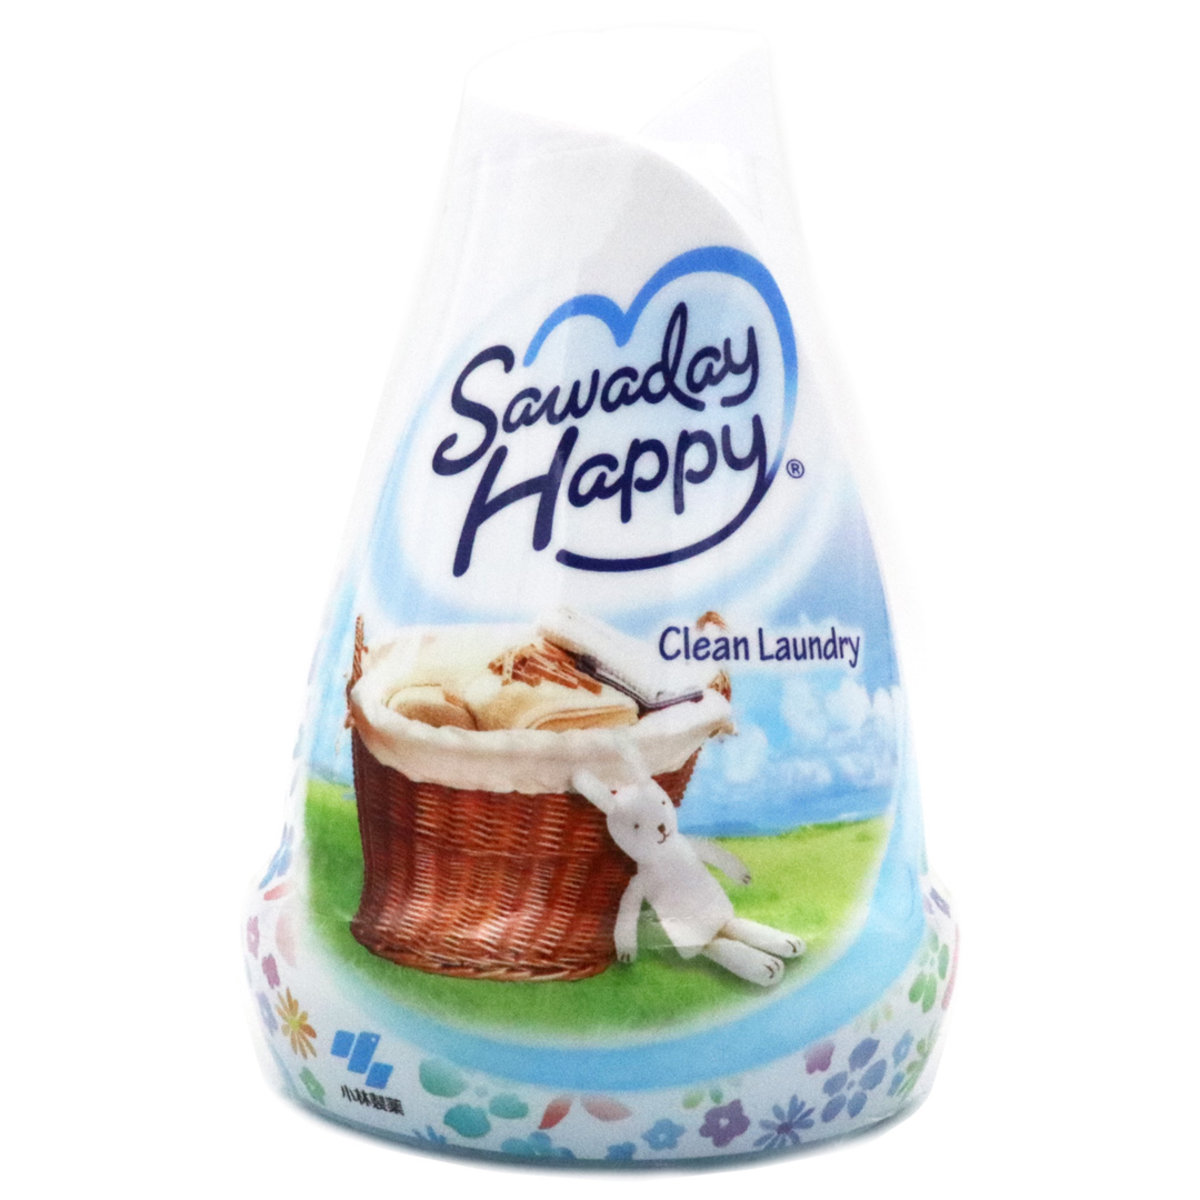 Clean Laundry Sawaday Happy indoor air fragrance (Baby Boy Rabbit Blue)  150g